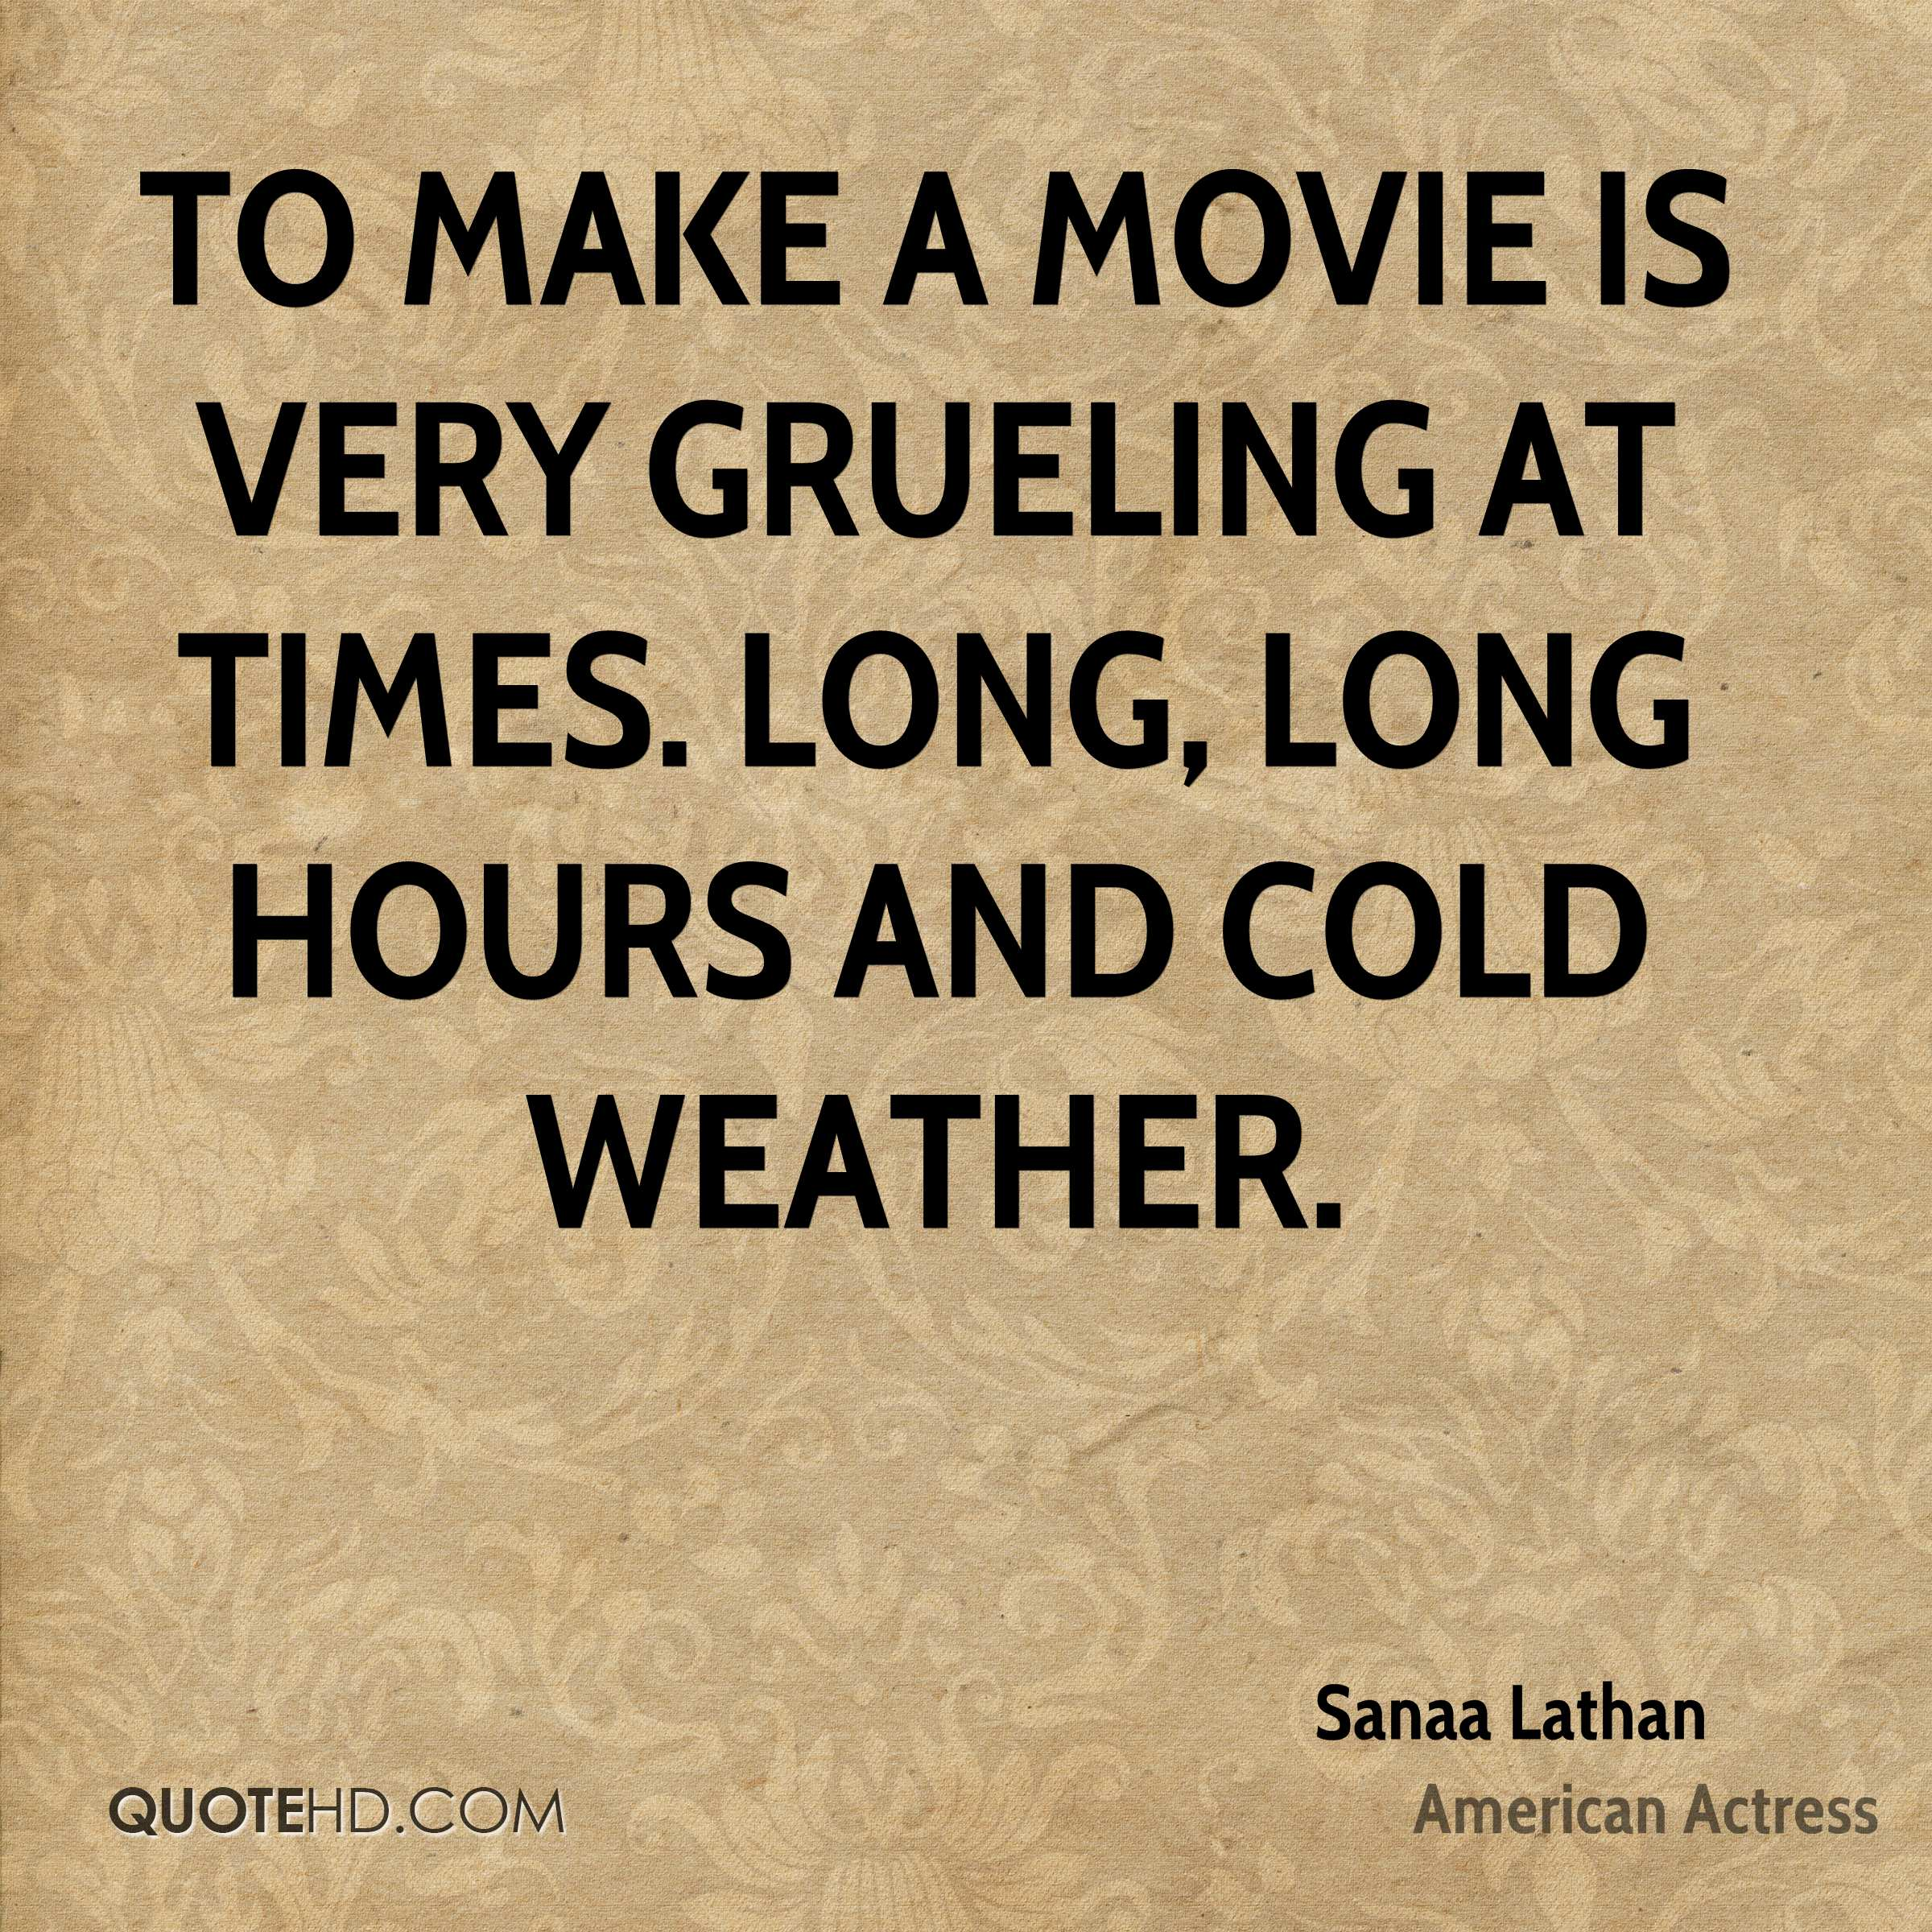 To make a movie is very grueling at times. Long, long hours and cold weather.